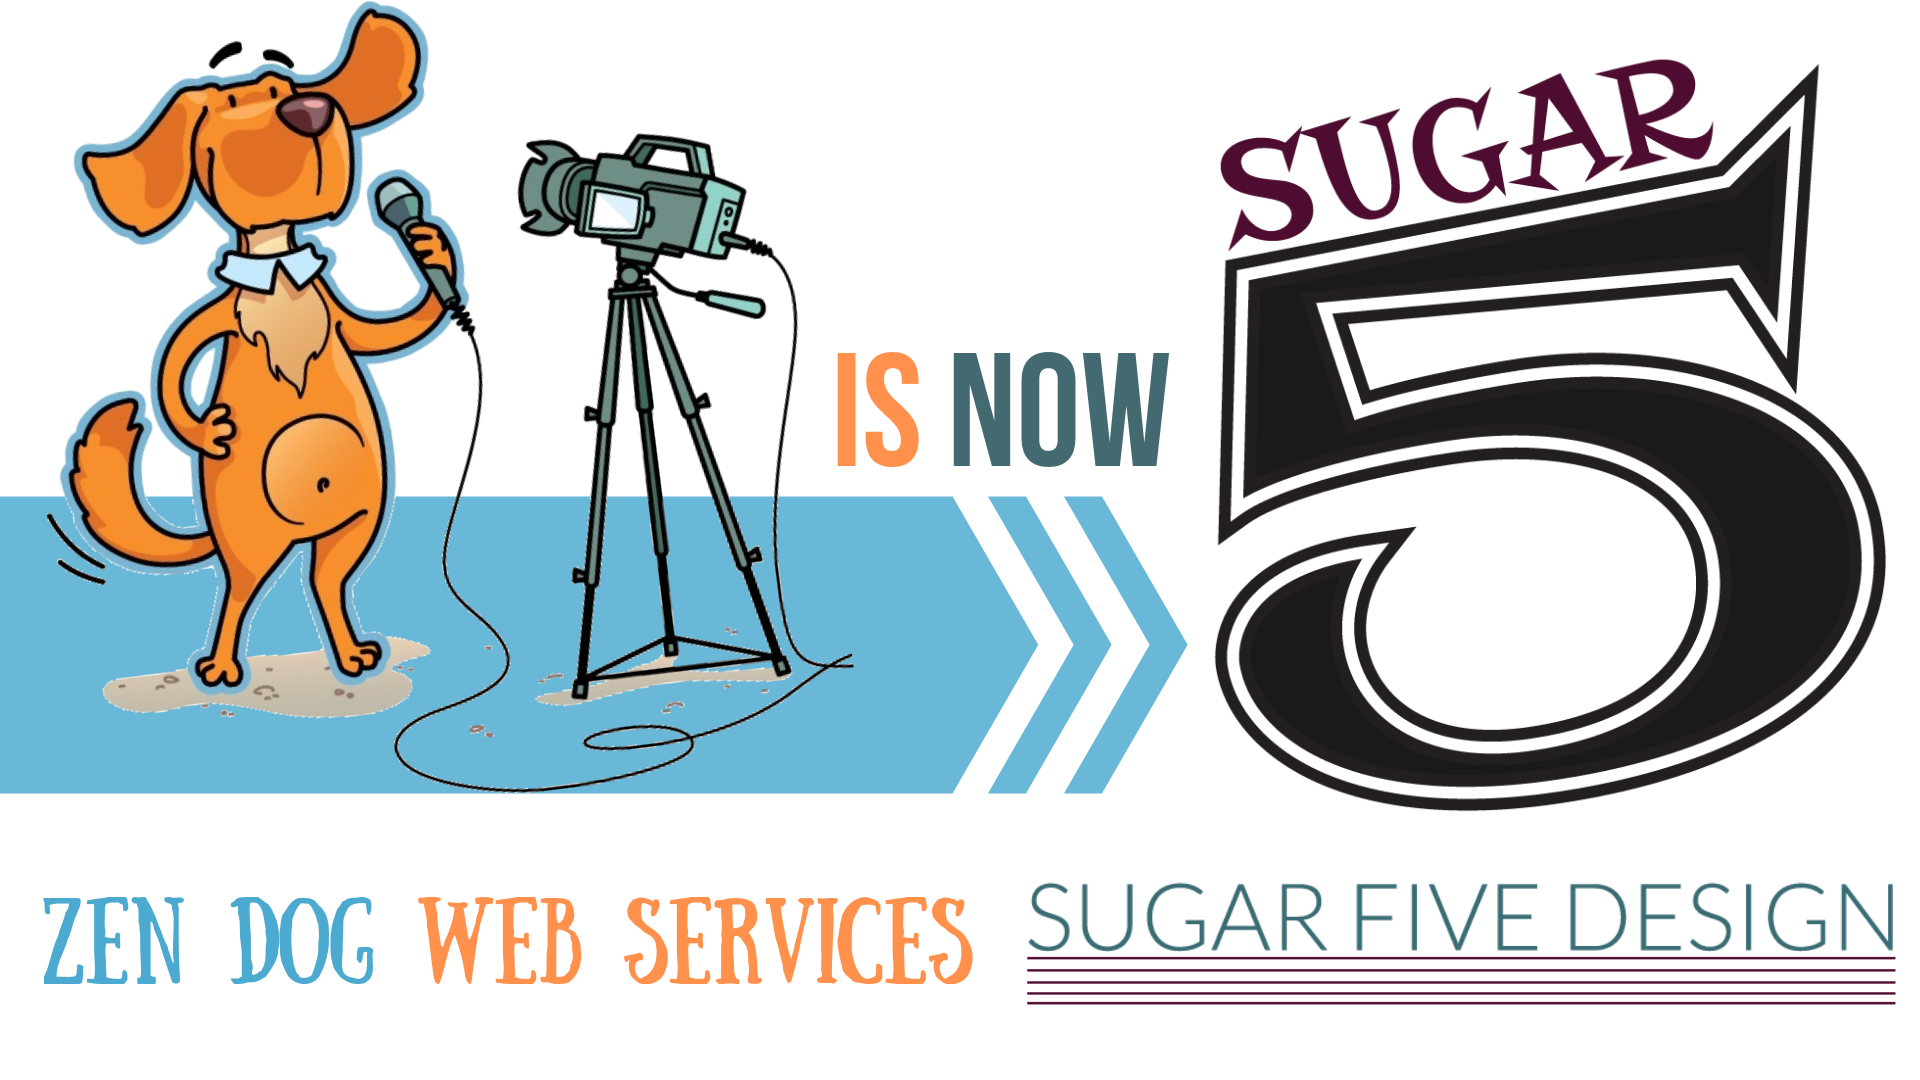 Zen Dog is now Sugar Five